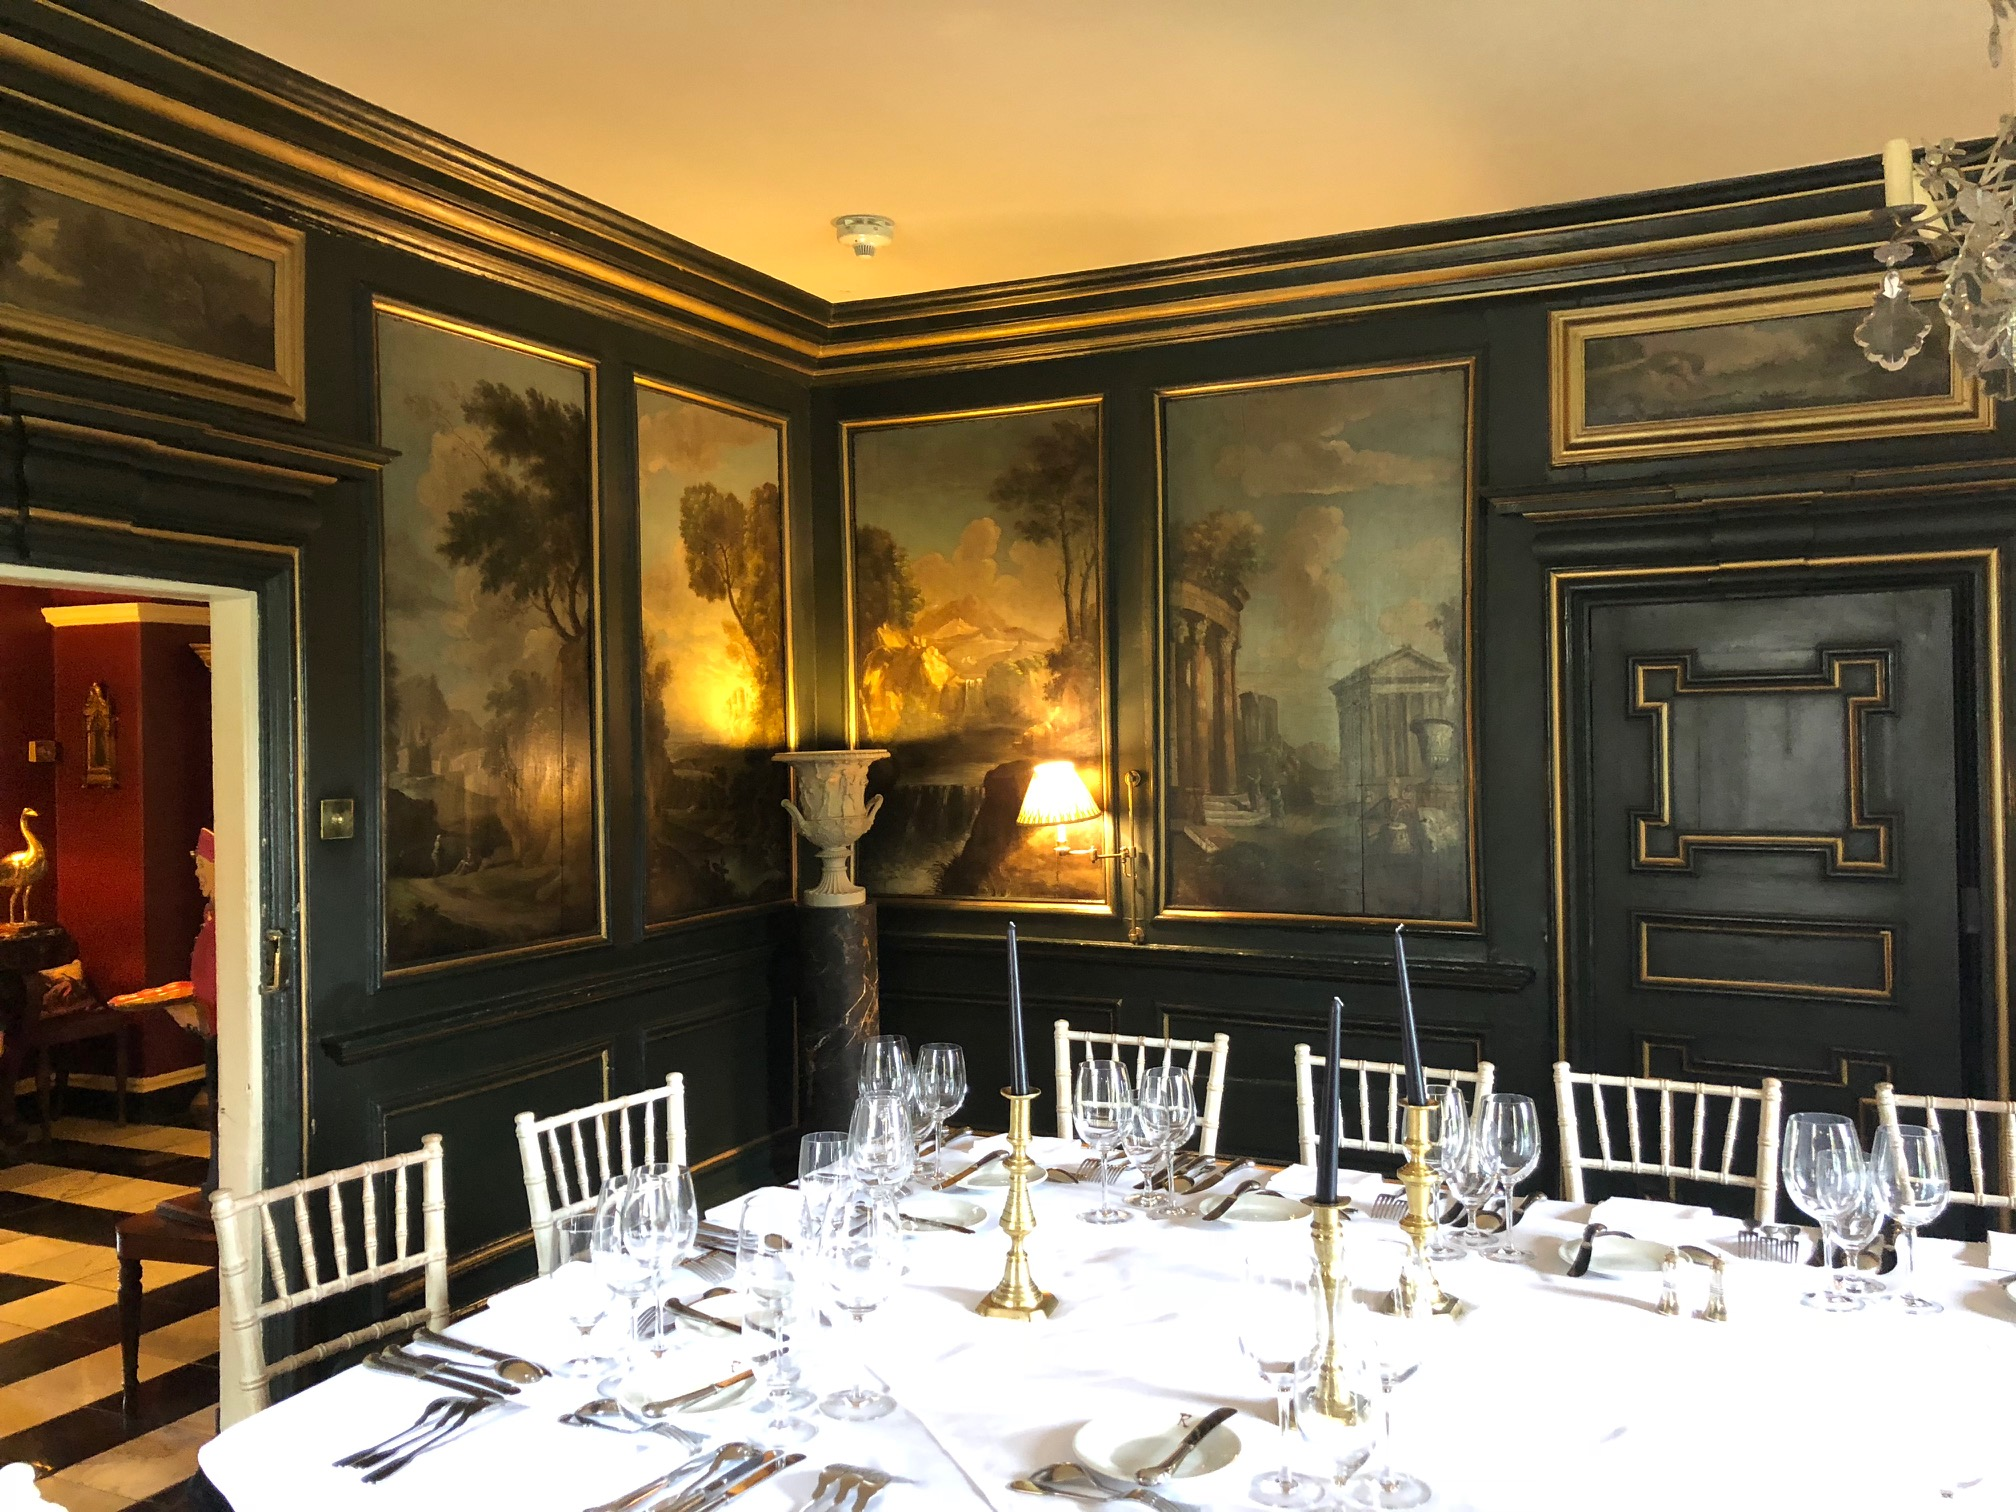 The famous painted room at Prestonfield